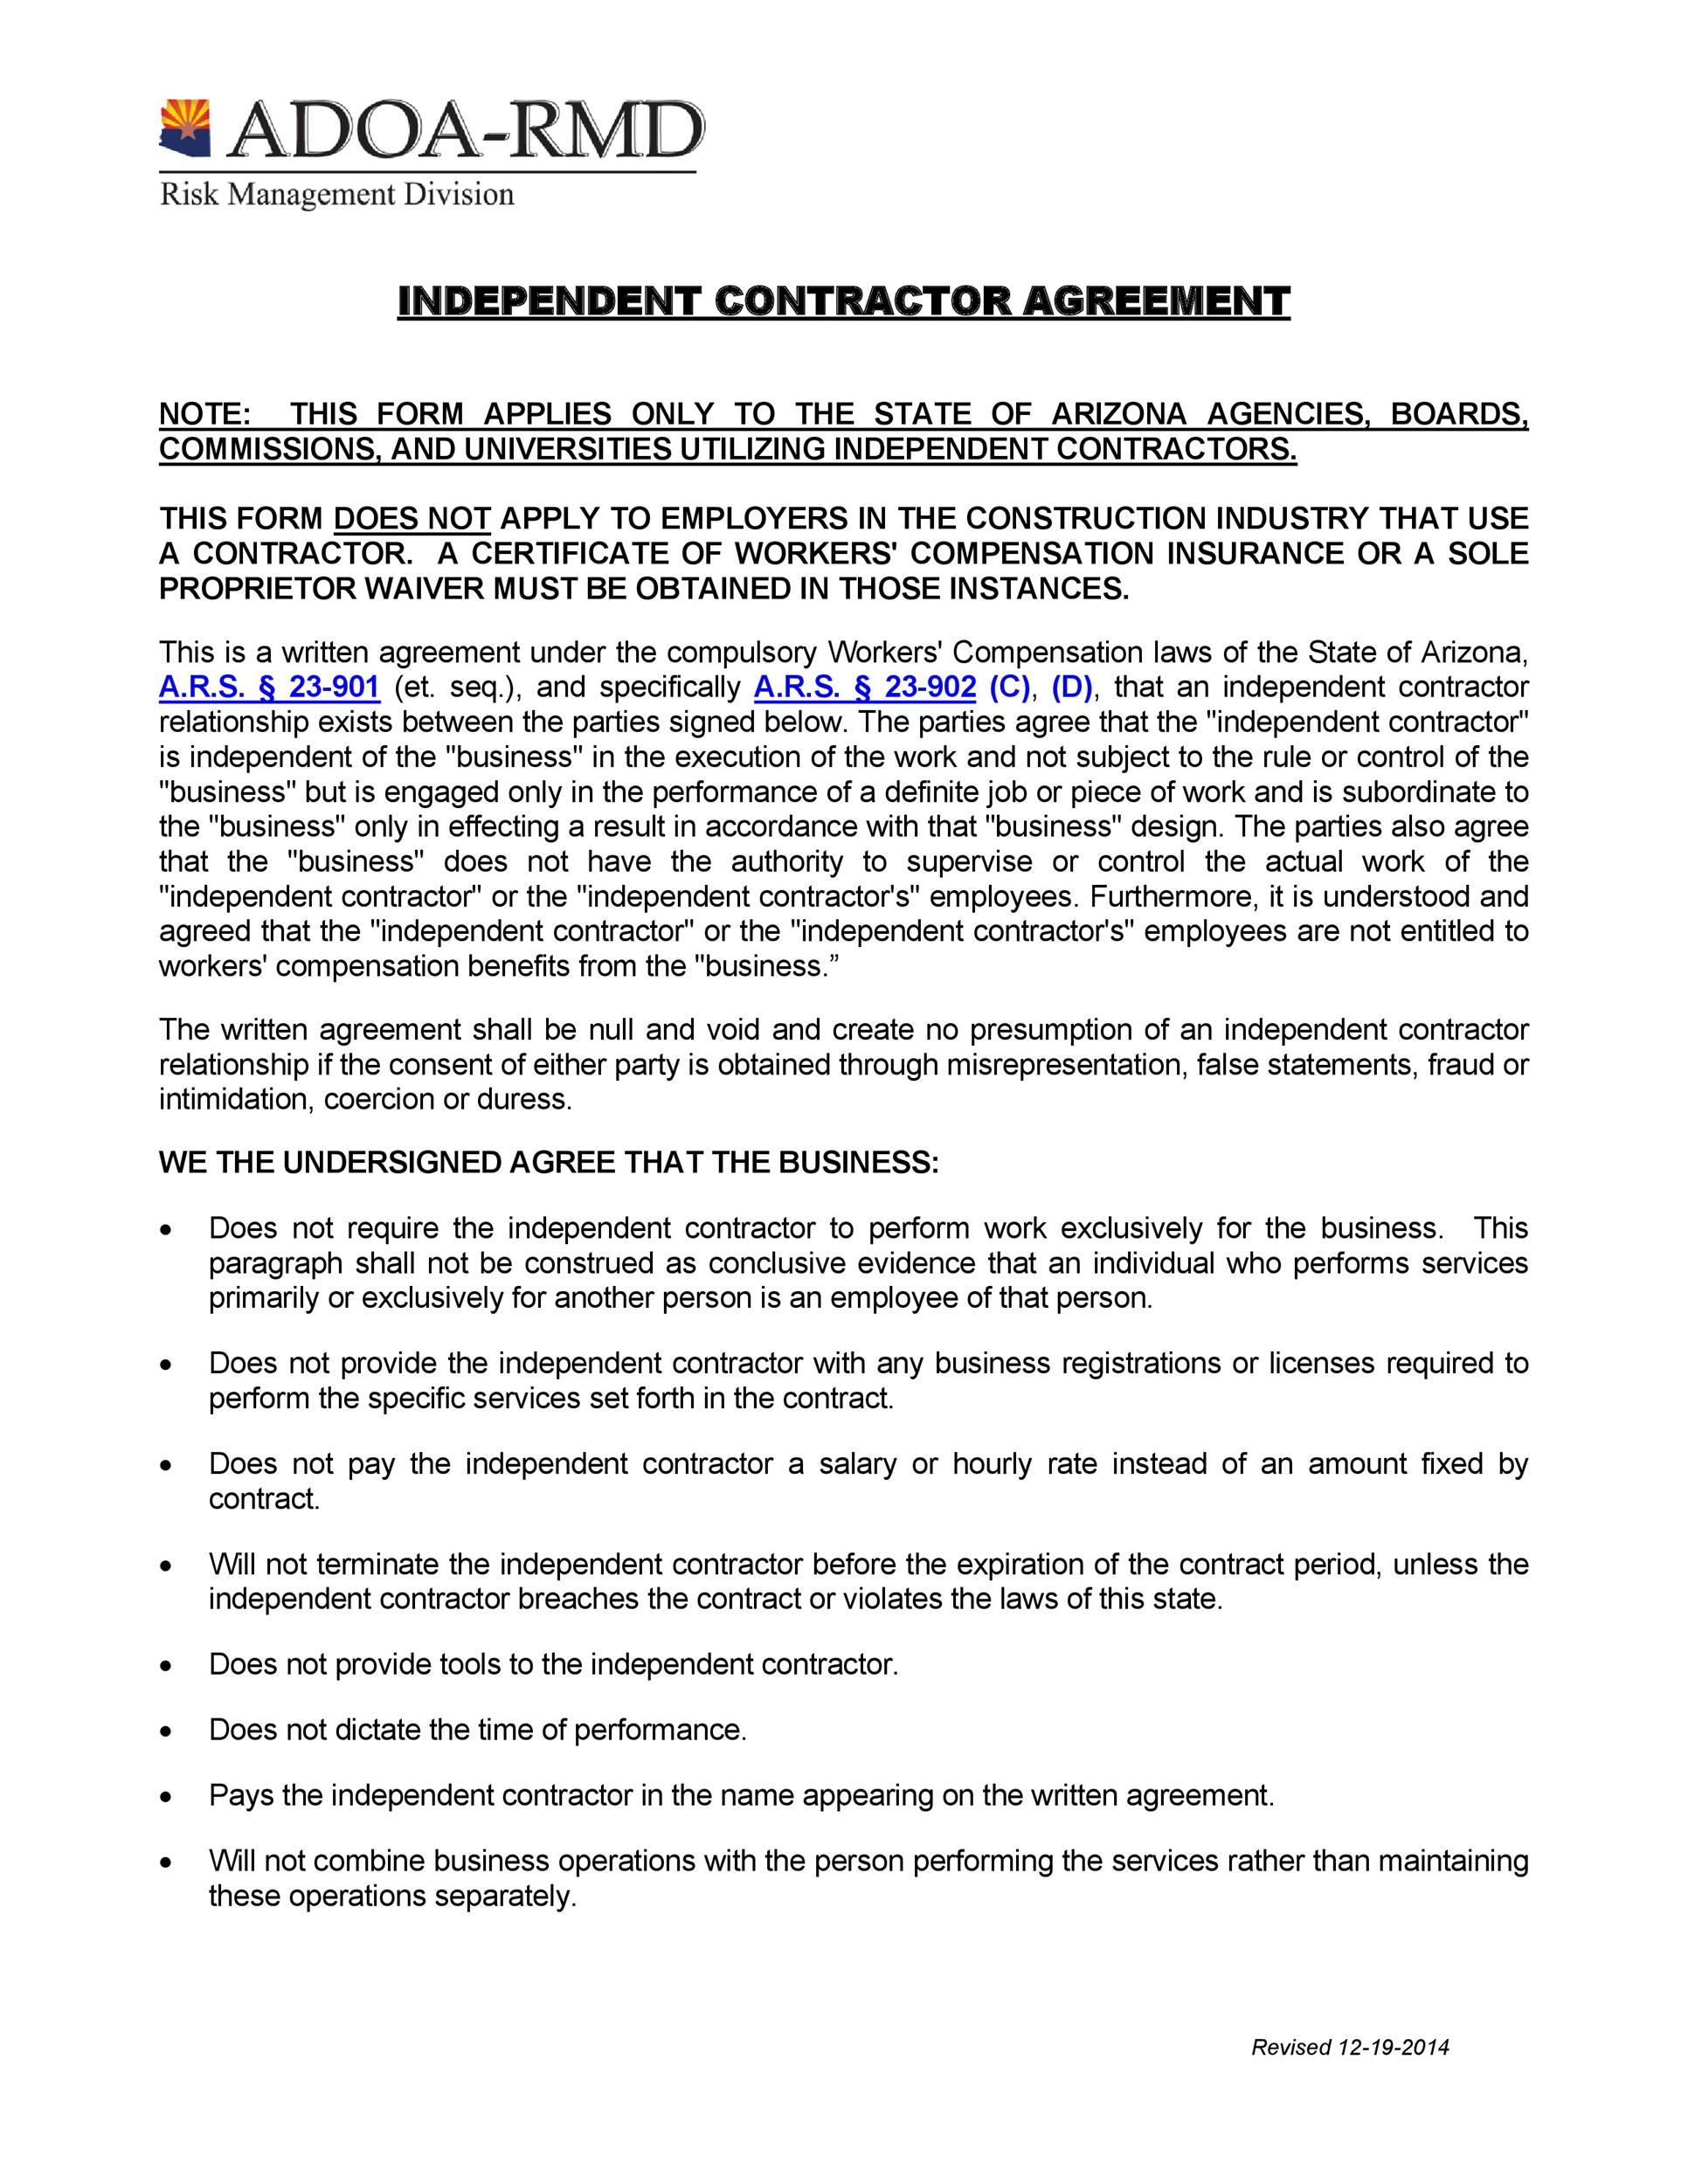 50 FREE Independent Contractor Agreement Forms Templates – Simple Construction Contract Form